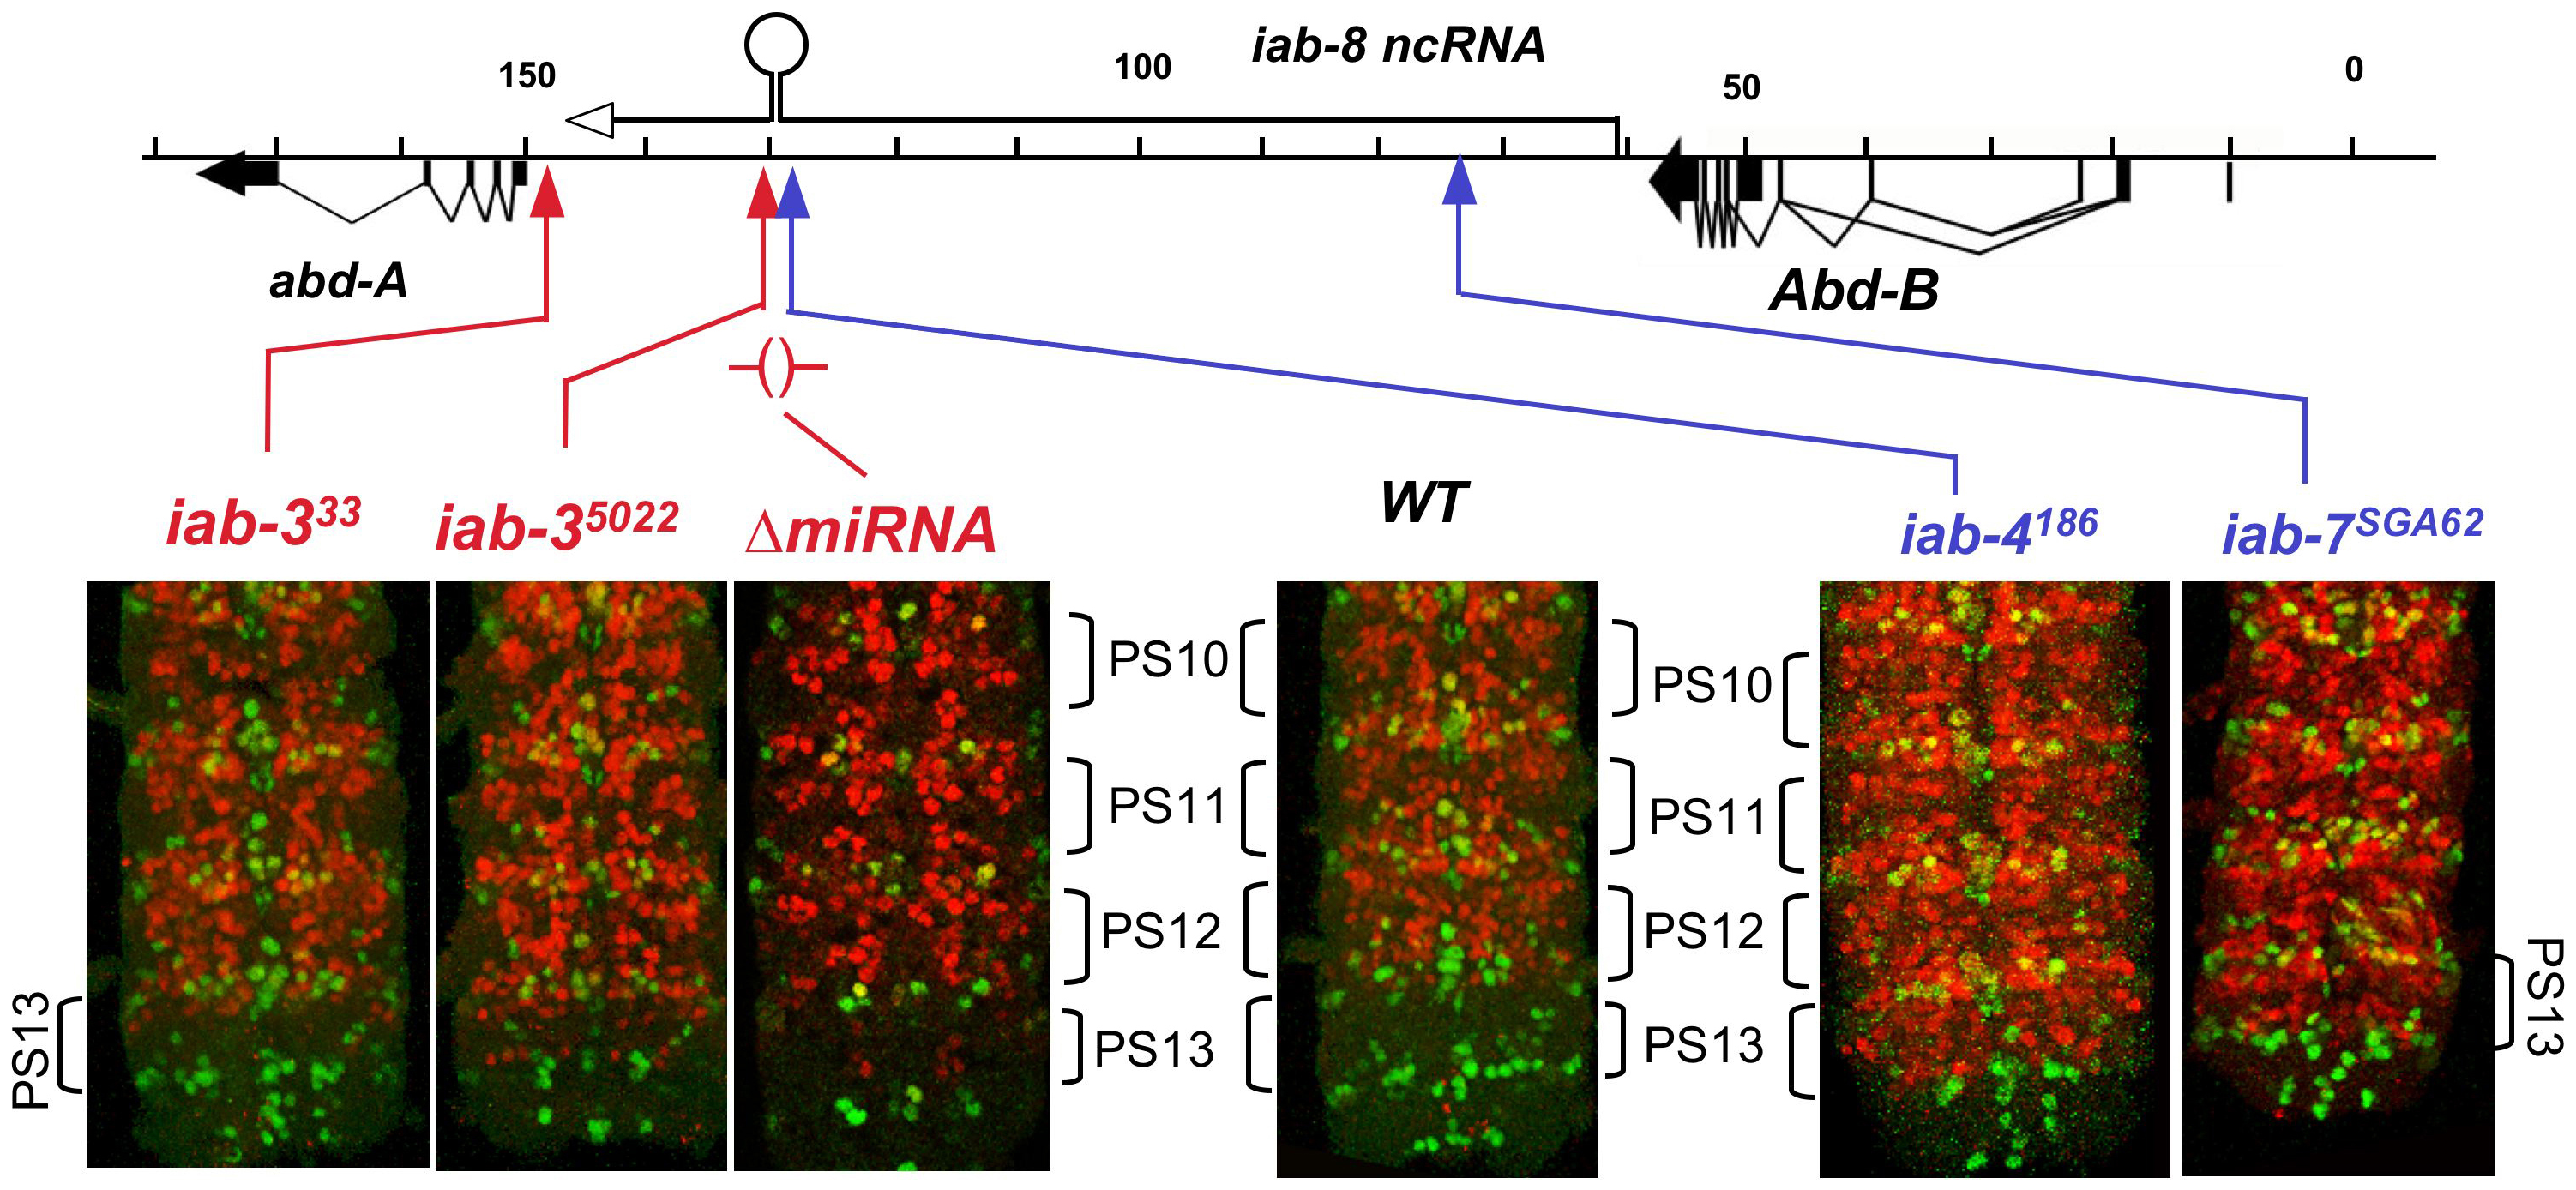 ABD-A expression in rearrangements truncating the iab-8 ncRNA.